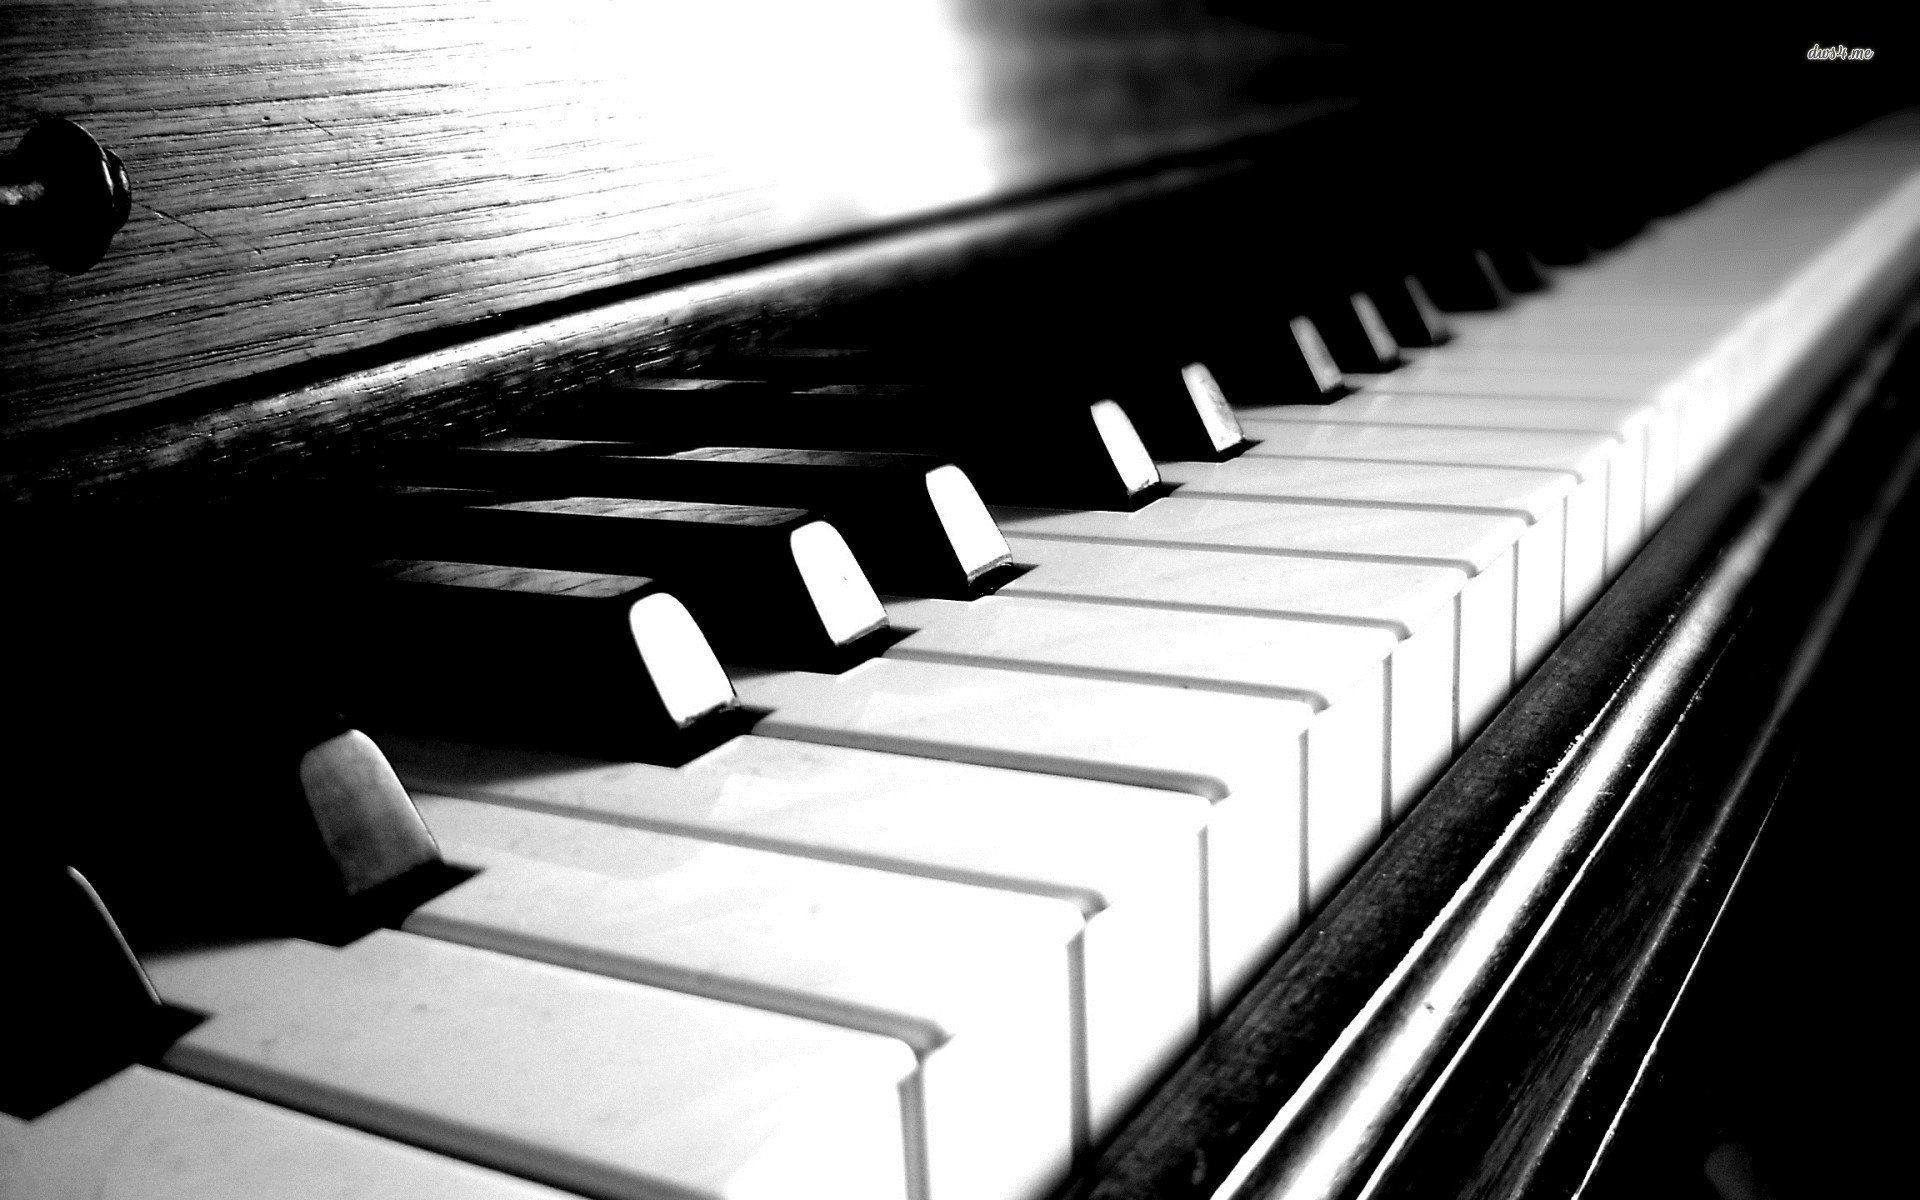 73 Music Keyboard Wallpaper On Wallpapersafari